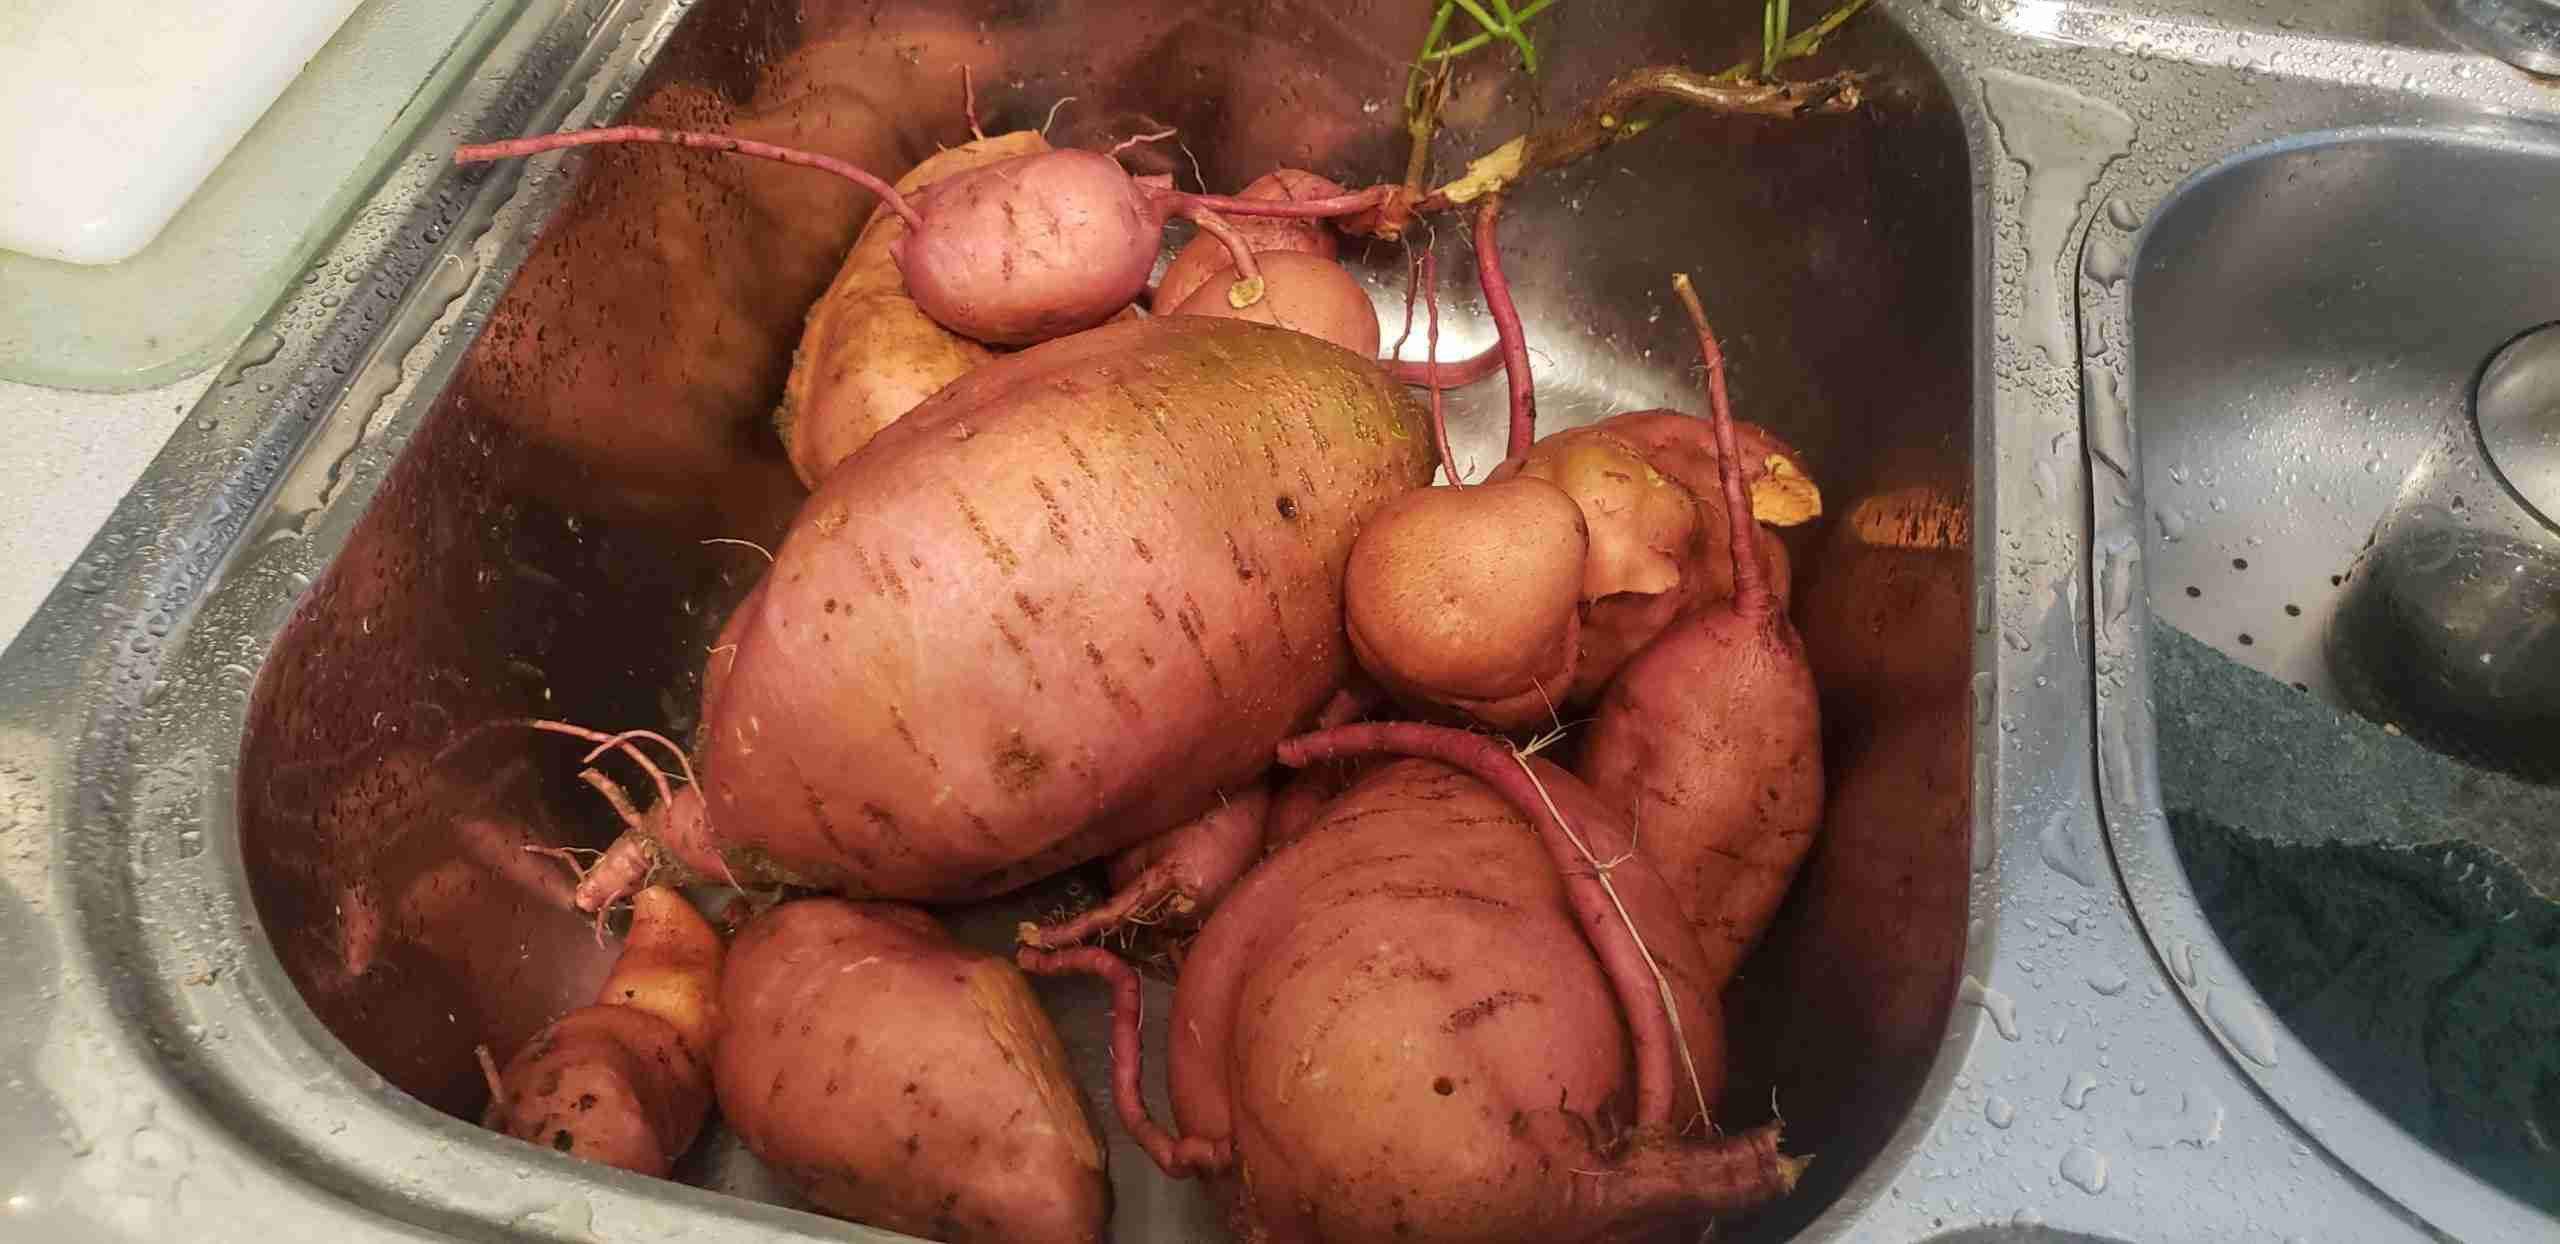 Huge Sweet Potatoes Harvested From Companion Planting with Tomatoes